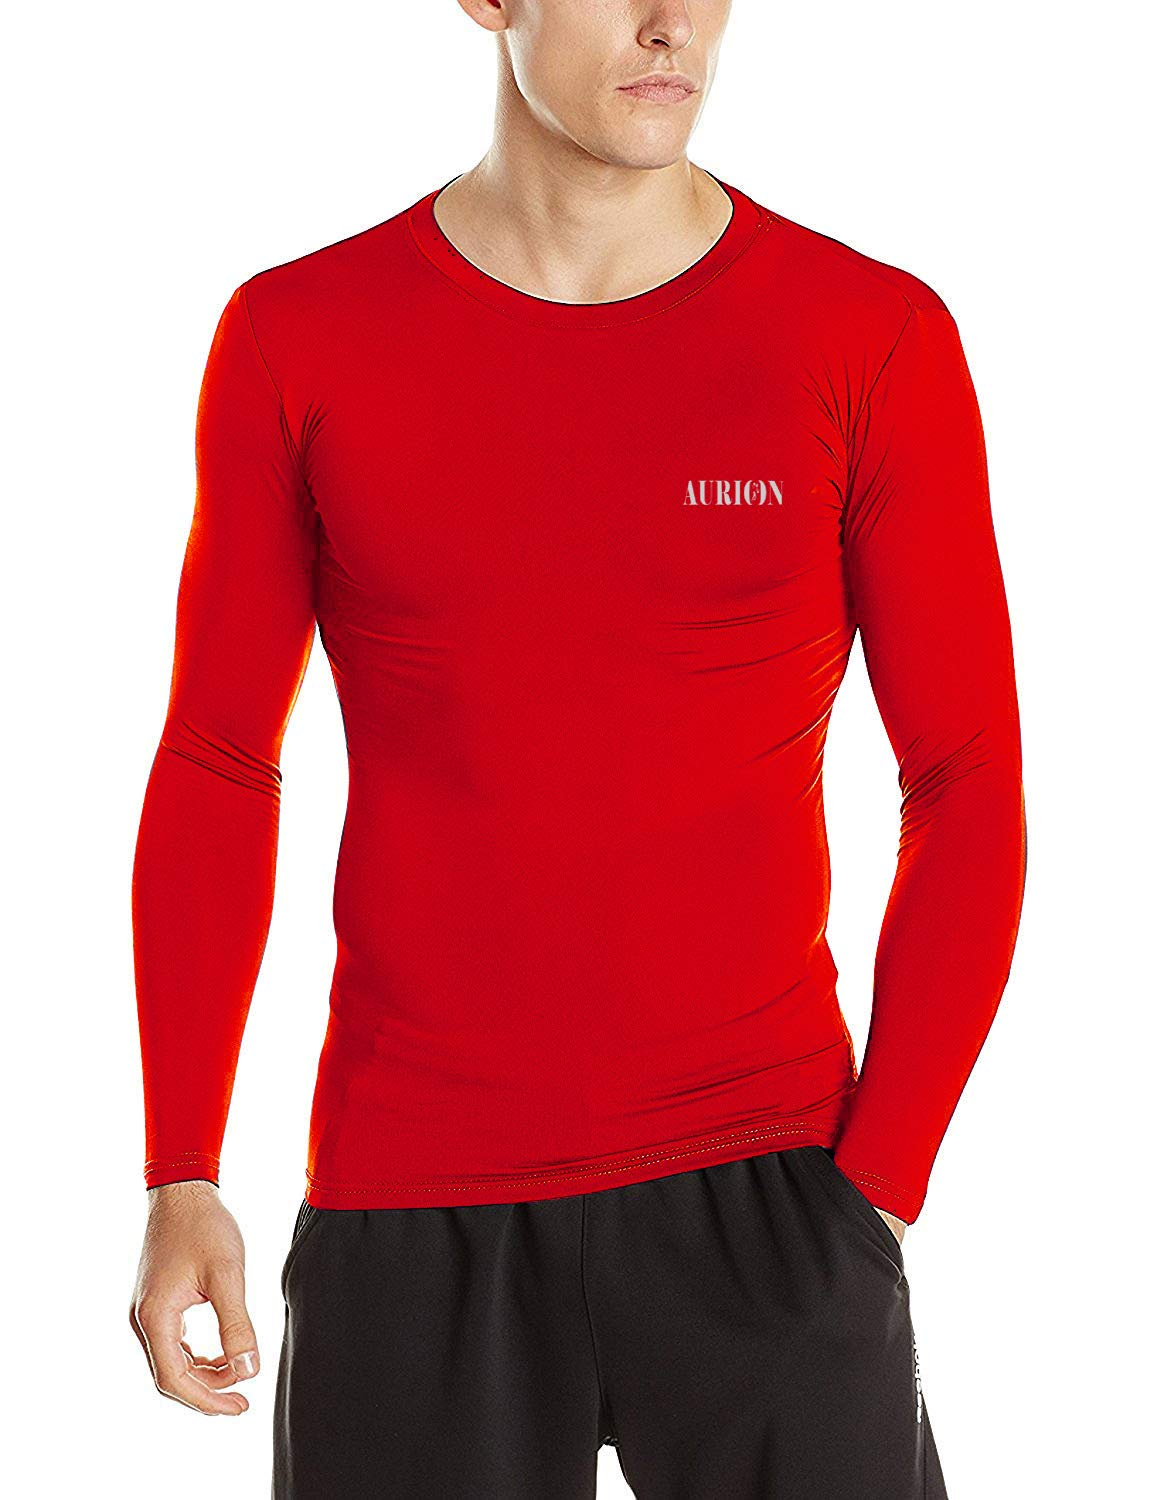 Aurion Inner-Lycra-RED-(38) Synthetic Unisex Lycra Athletic Multi Sports Compression Top, Medium (Red) (B07PDW4RS2) Amazon Price History, Amazon Price Tracker